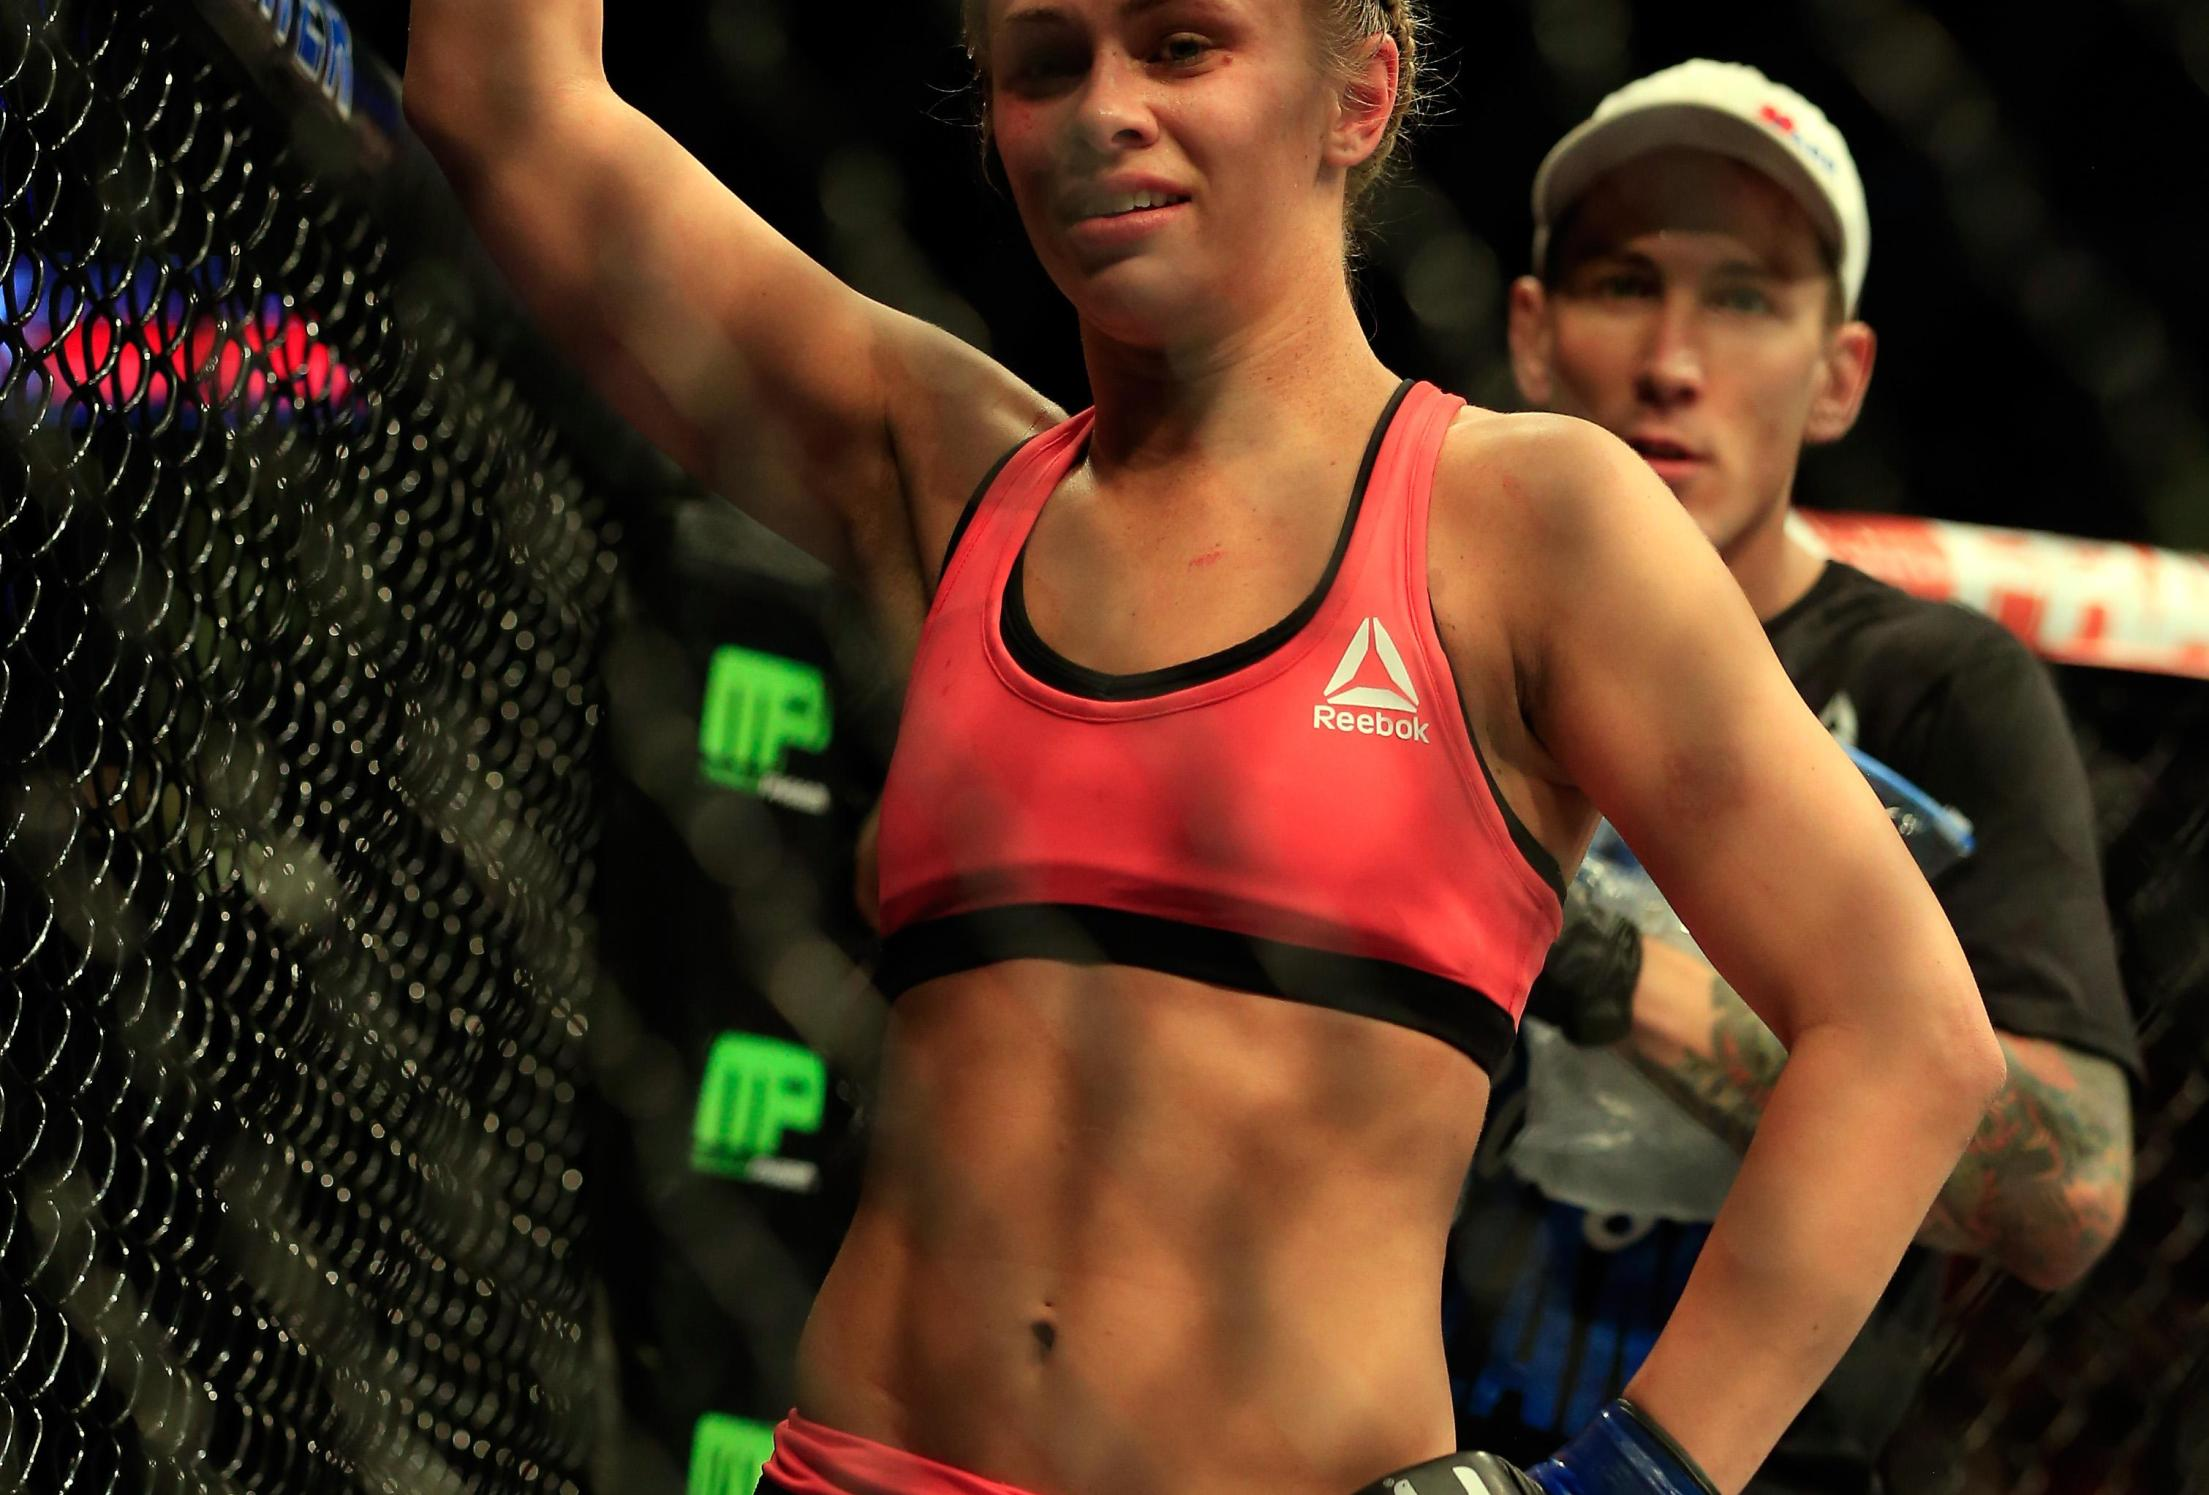 Paige VanZant says she would definitely not turn down the chance to fight in WWE